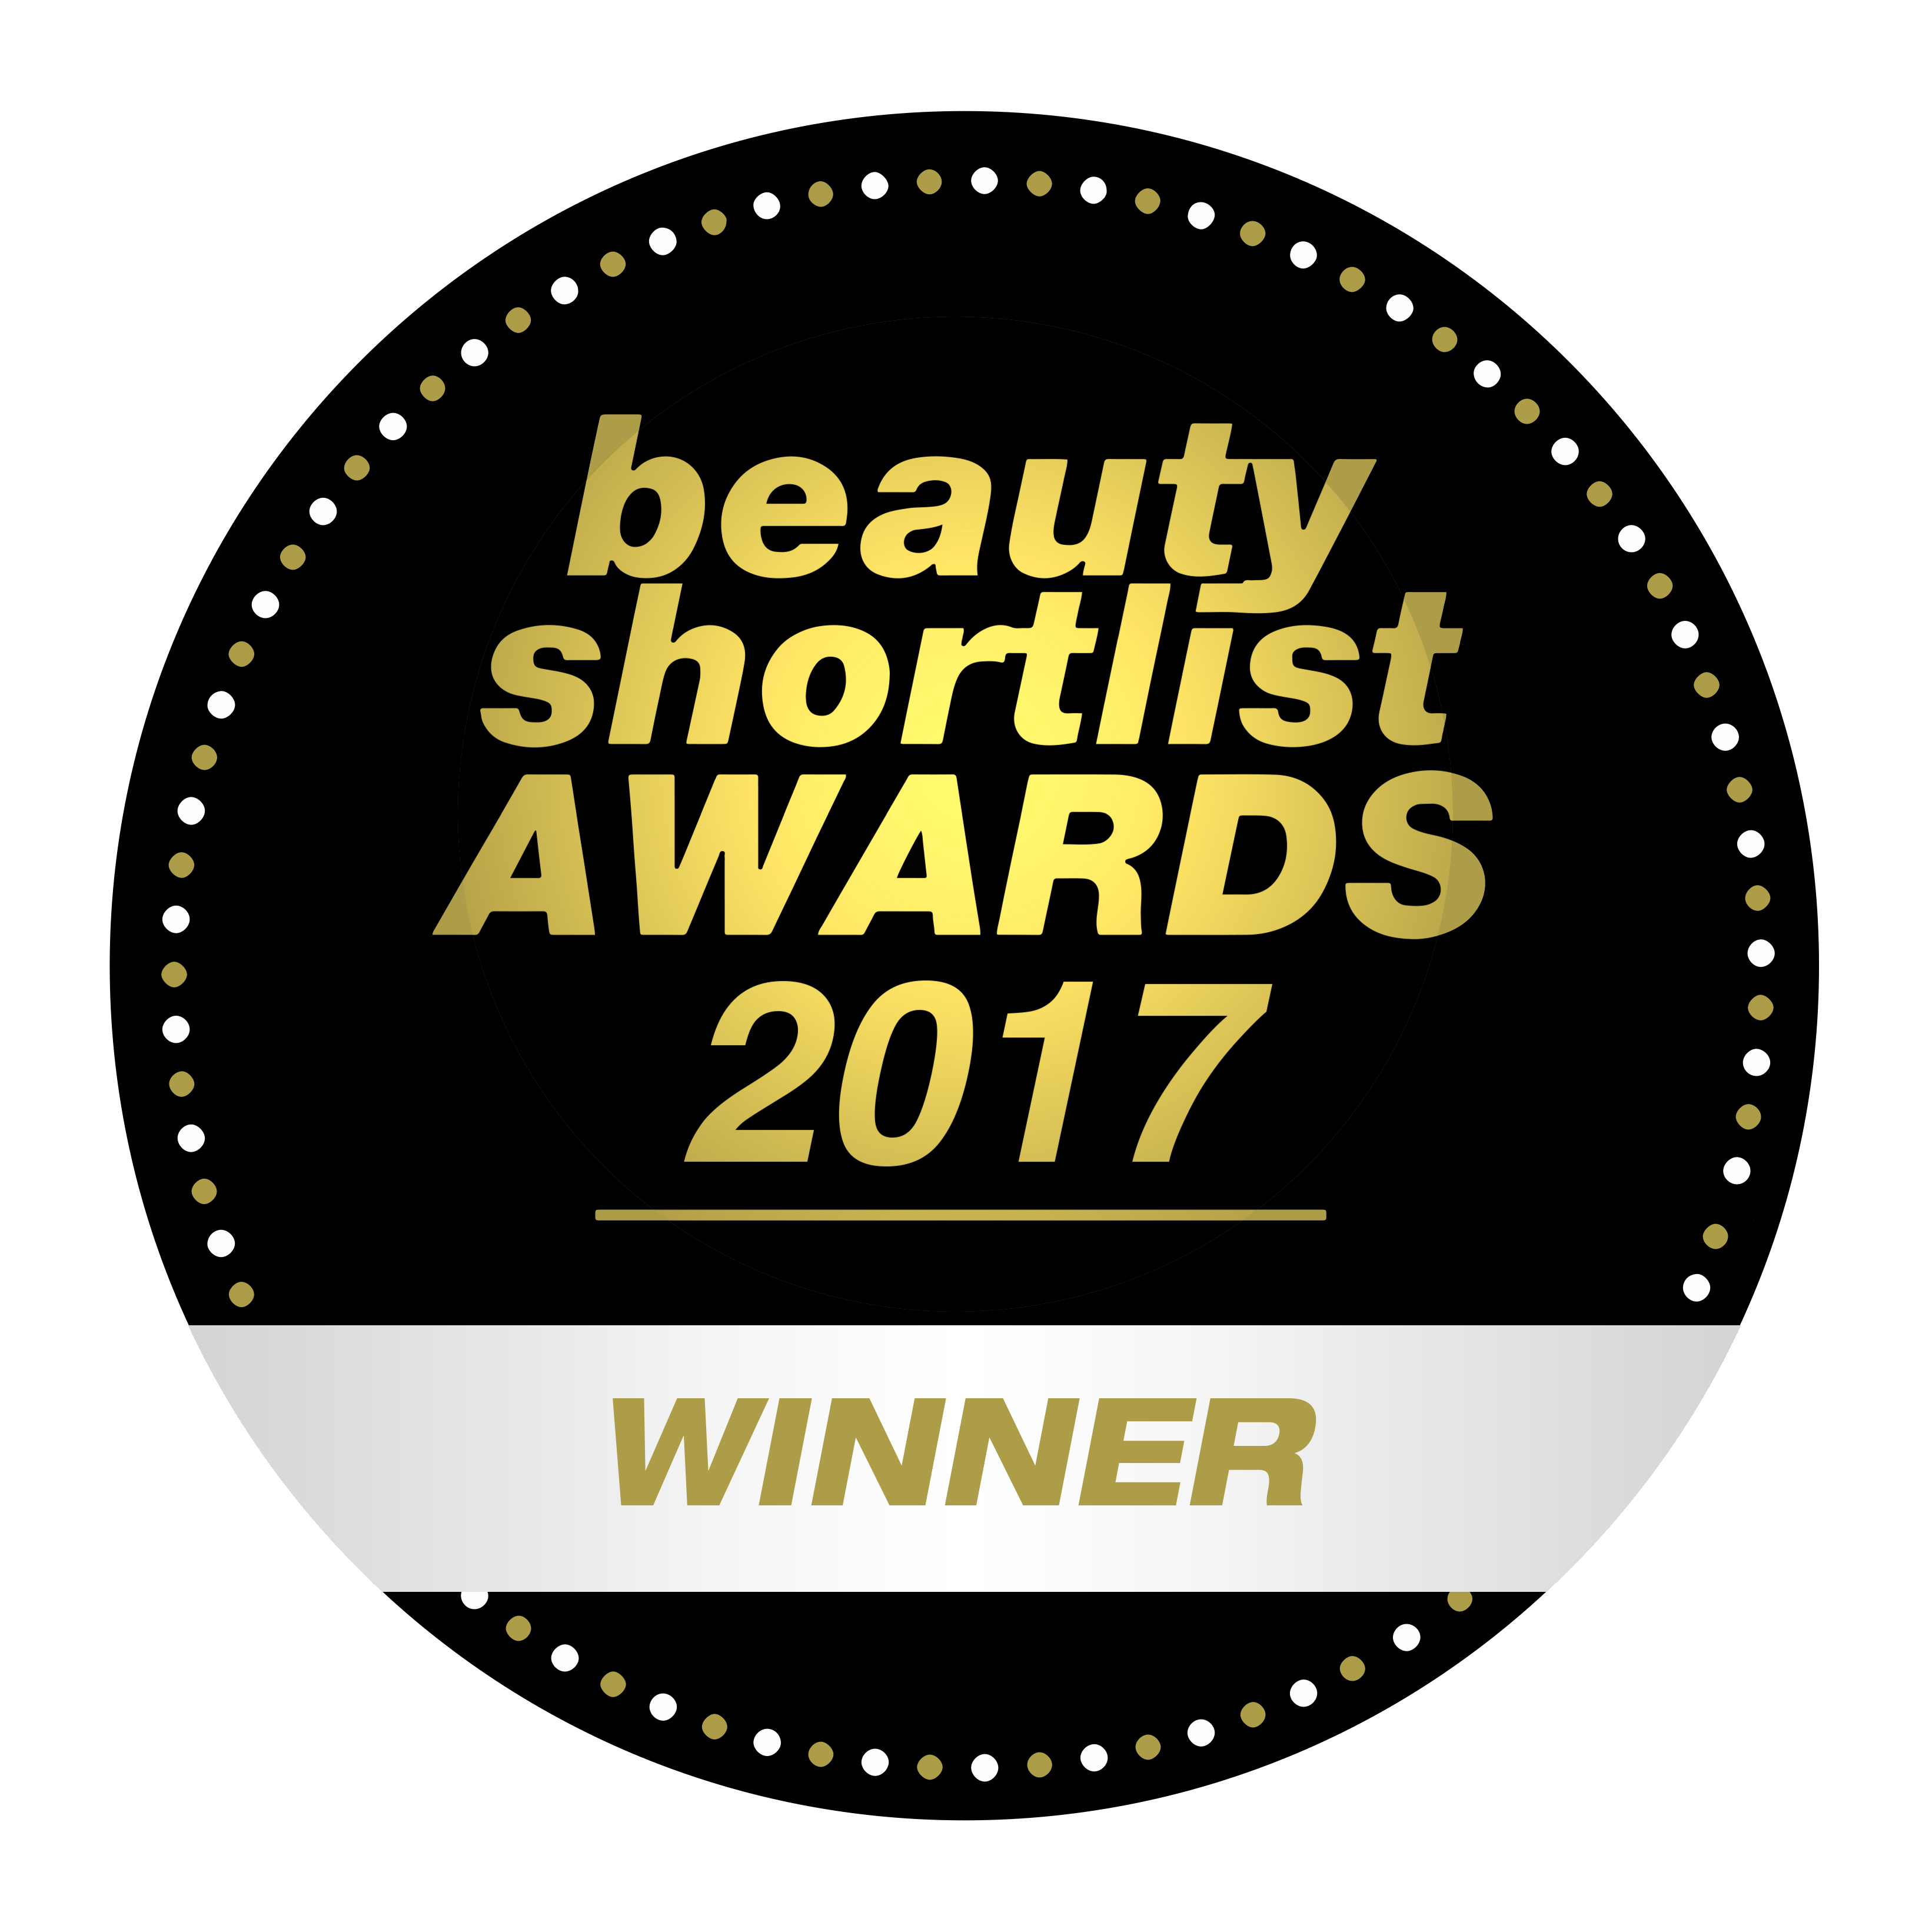 the-beauty-short-list-awards-winner-2017-beauty-shortlist-awards-300dpi.jpg